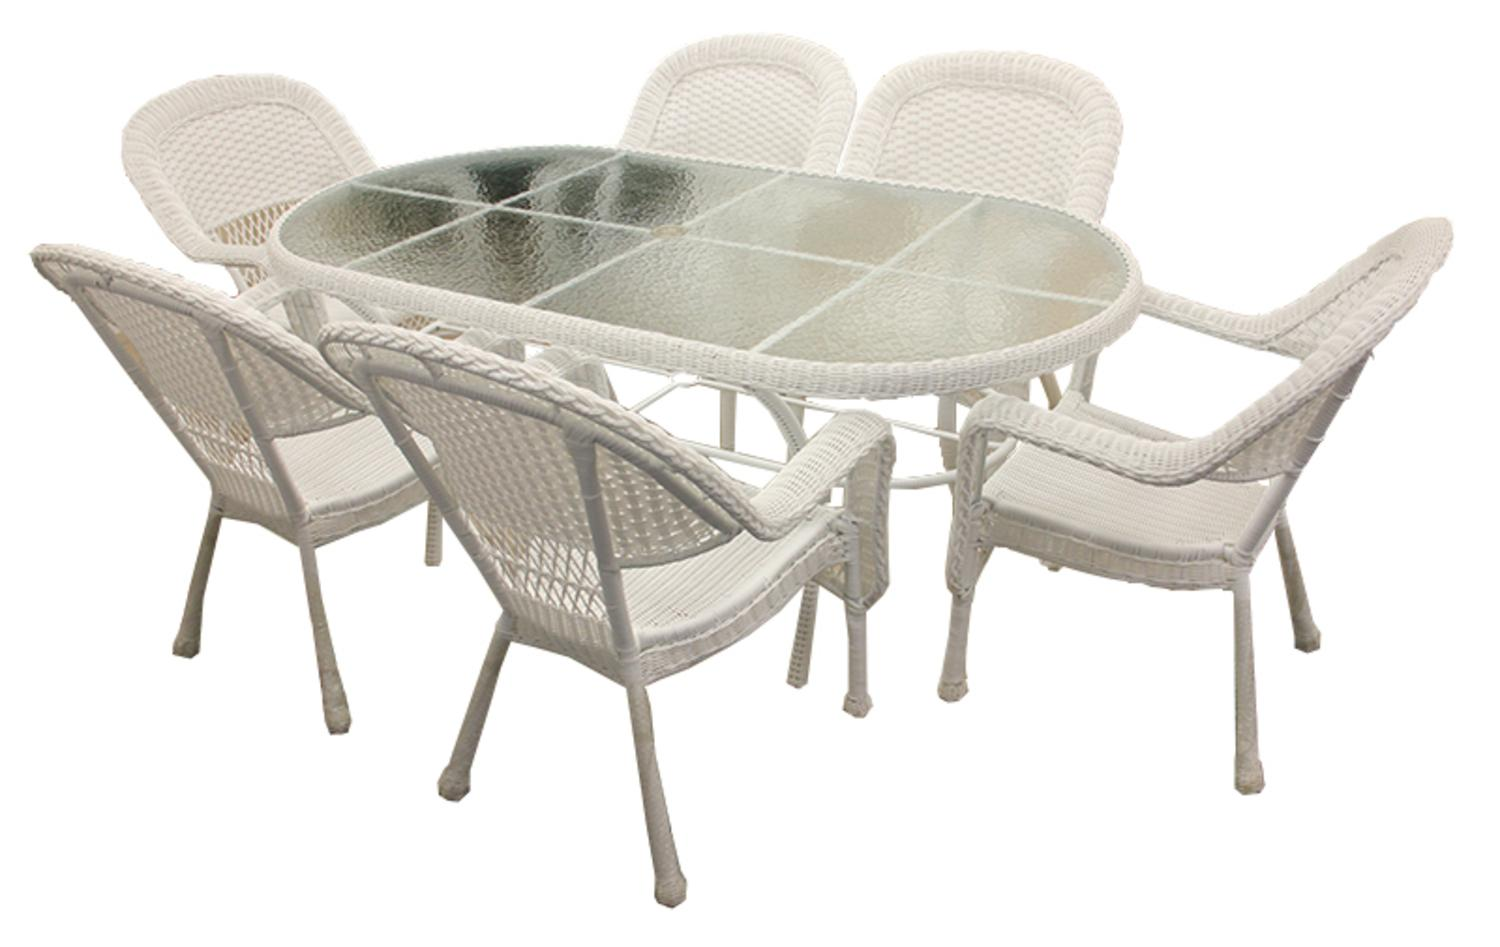 Details about lb international 7 piece white wicker patio dining set 6 chairs 1 dining table